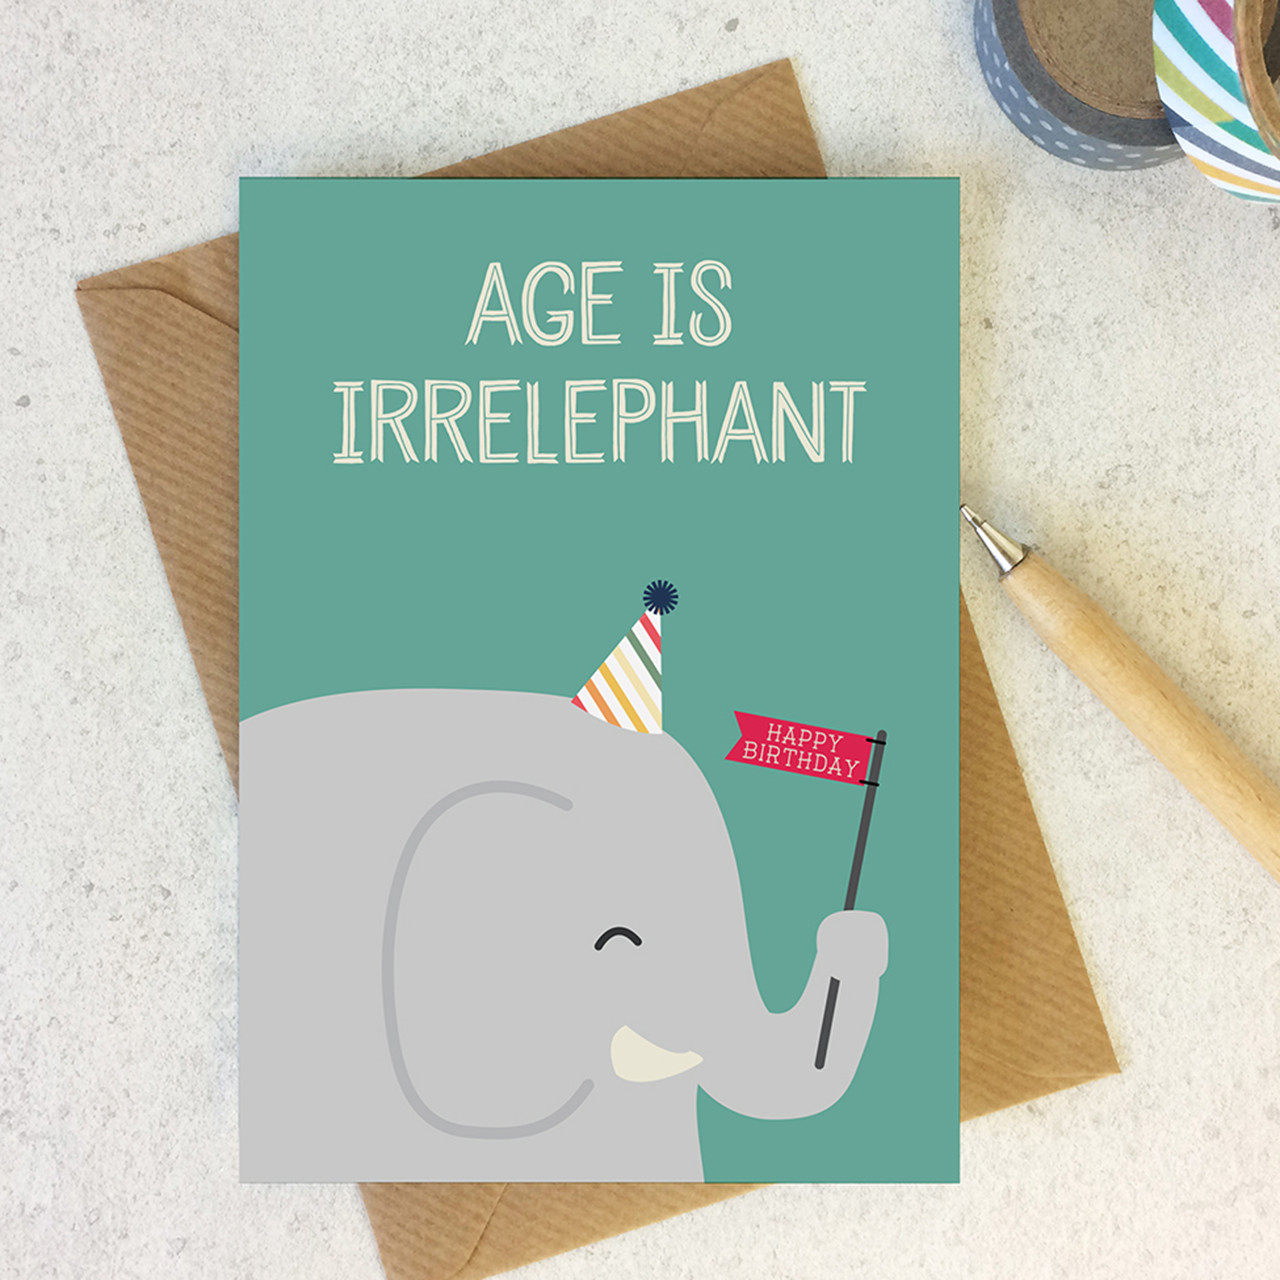 Age Is Irrelephant